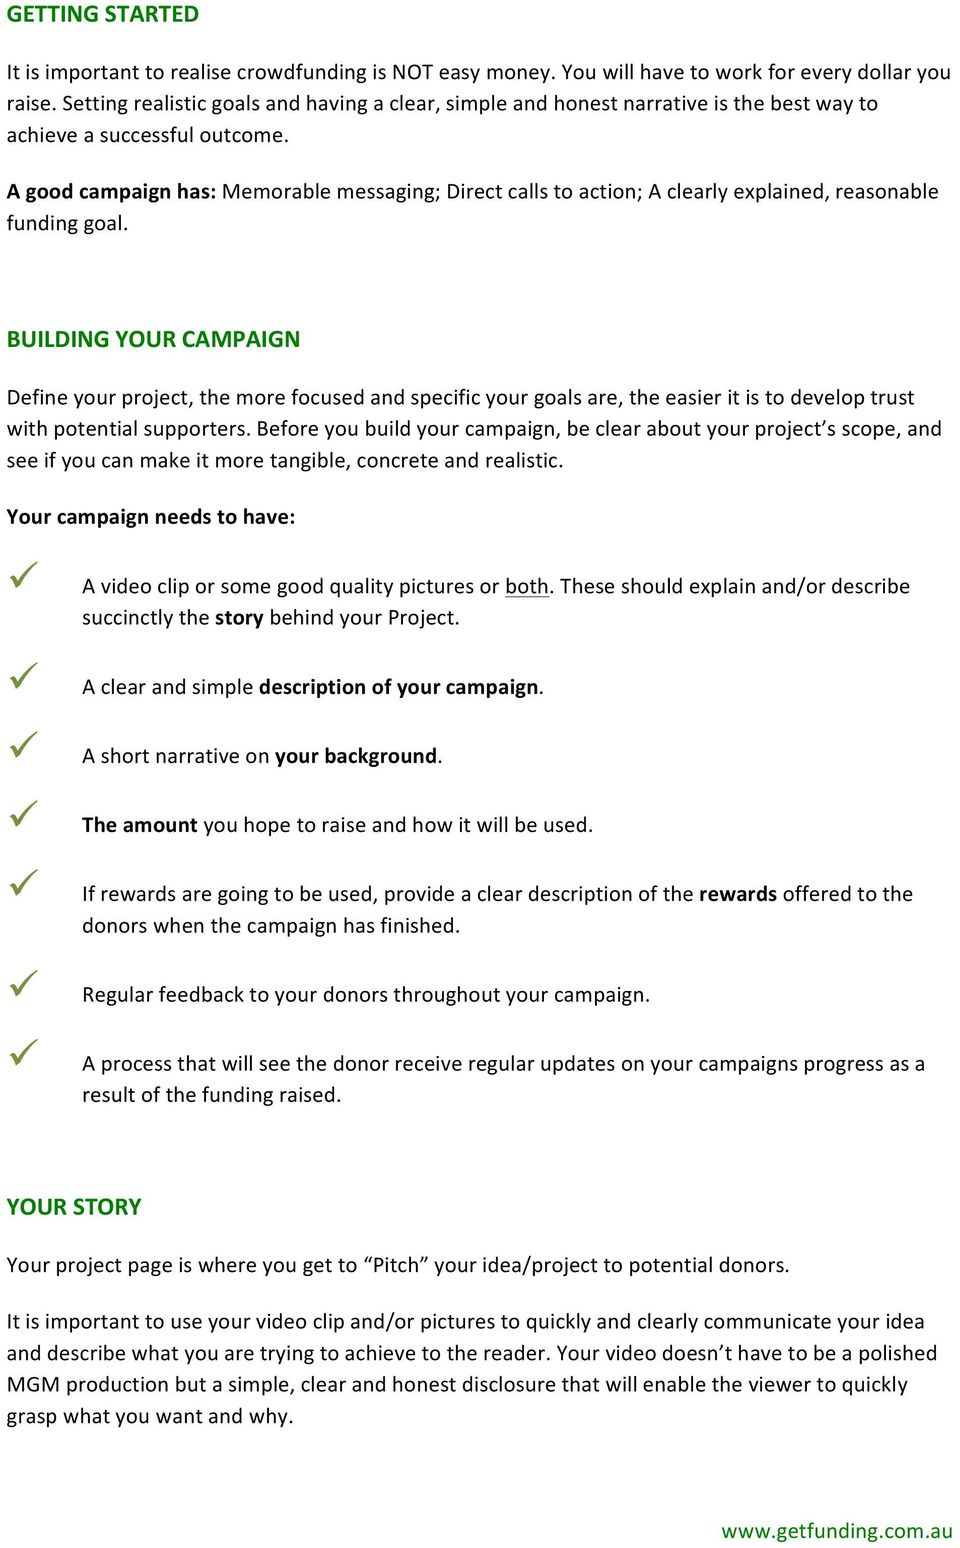 A good campaign has: Memorable messaging; Direct calls to action; A clearly explained, reasonable funding goal.